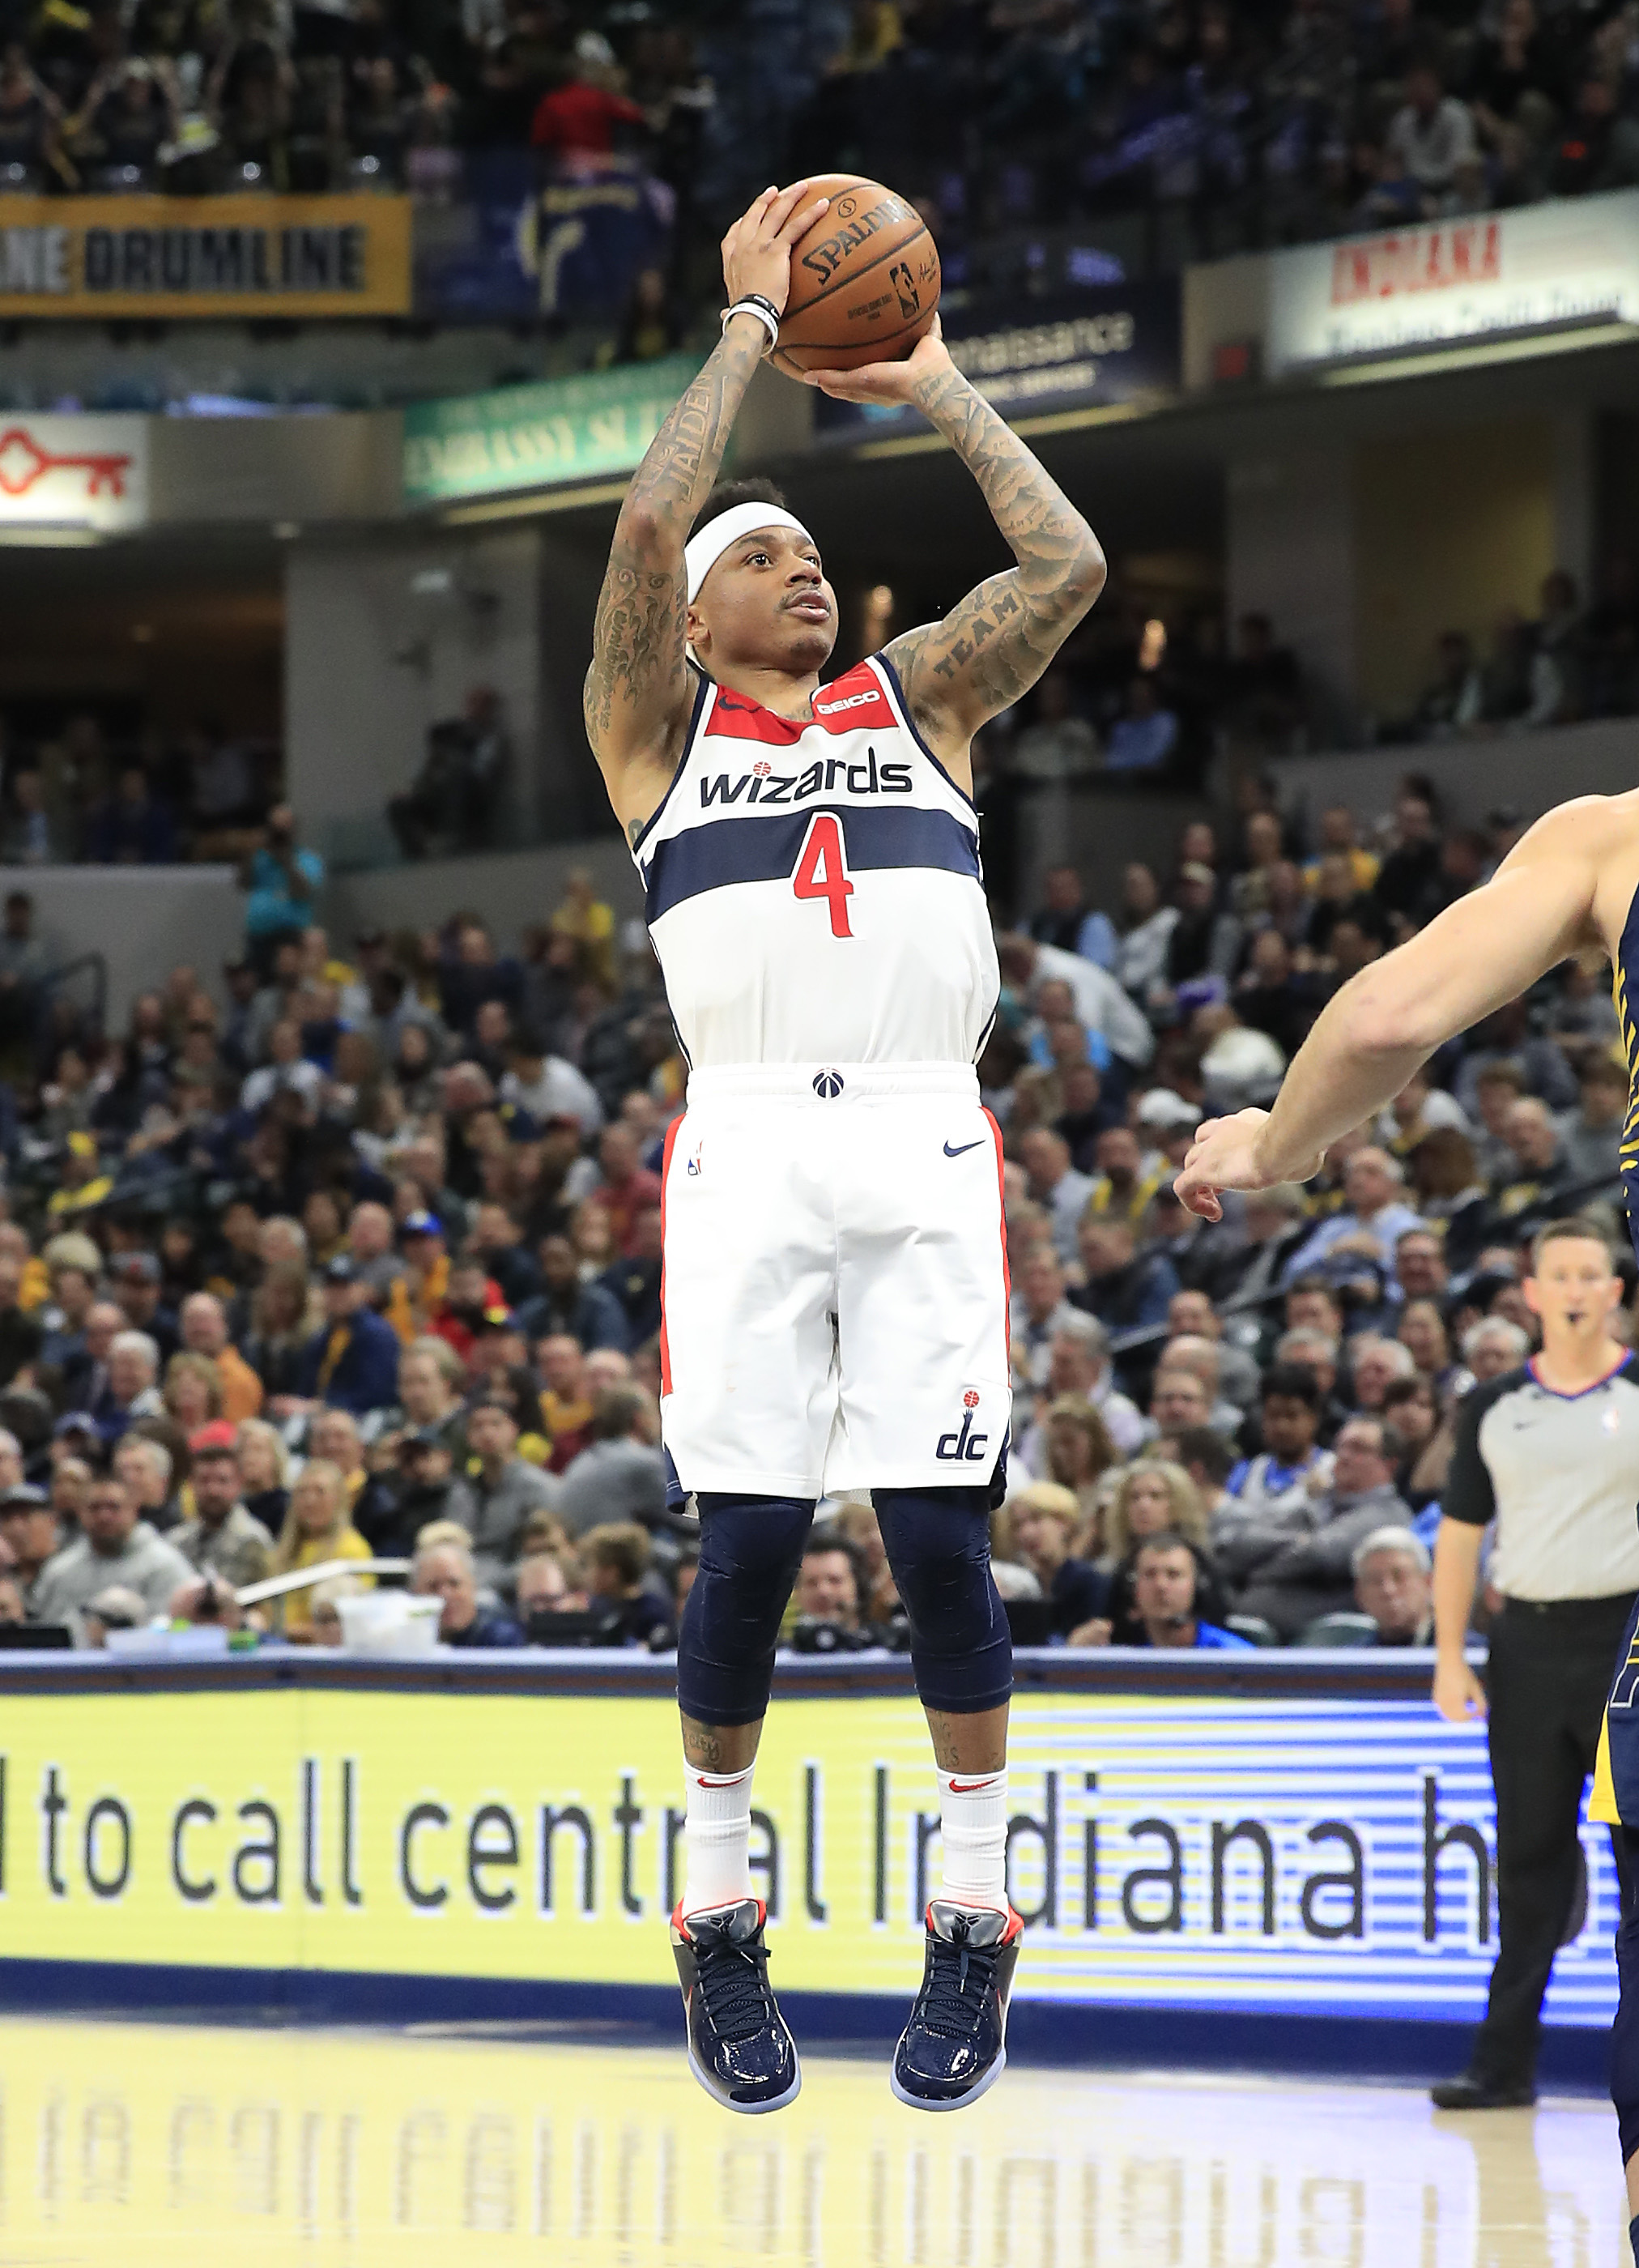 Isaiah Thomas entering the starting lineup hasn't change Wizards fortunes.